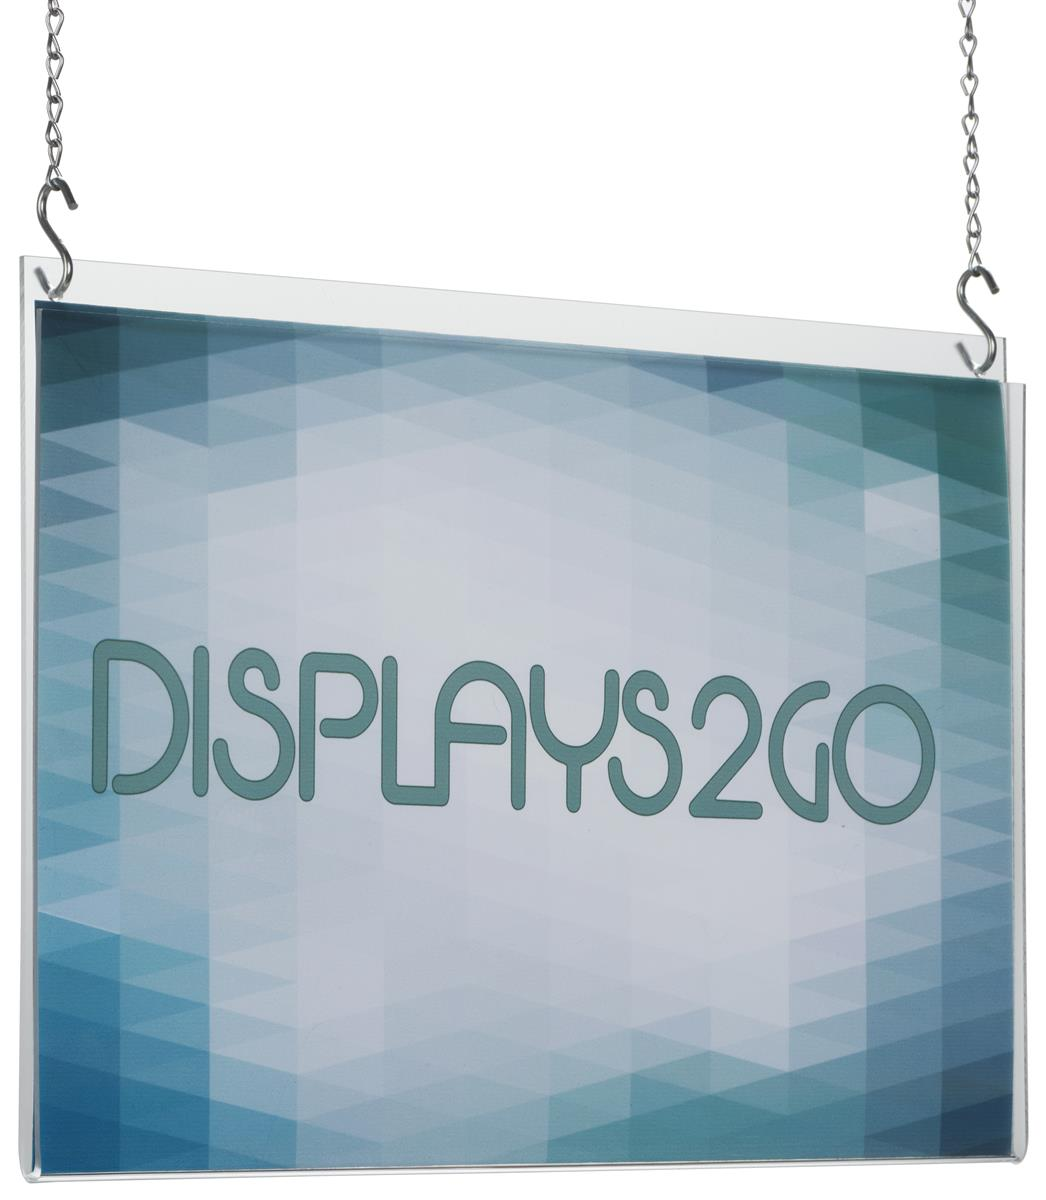 workshop series 17 x 11 hanging sign frame with 2 10 foot chains clear acrylic